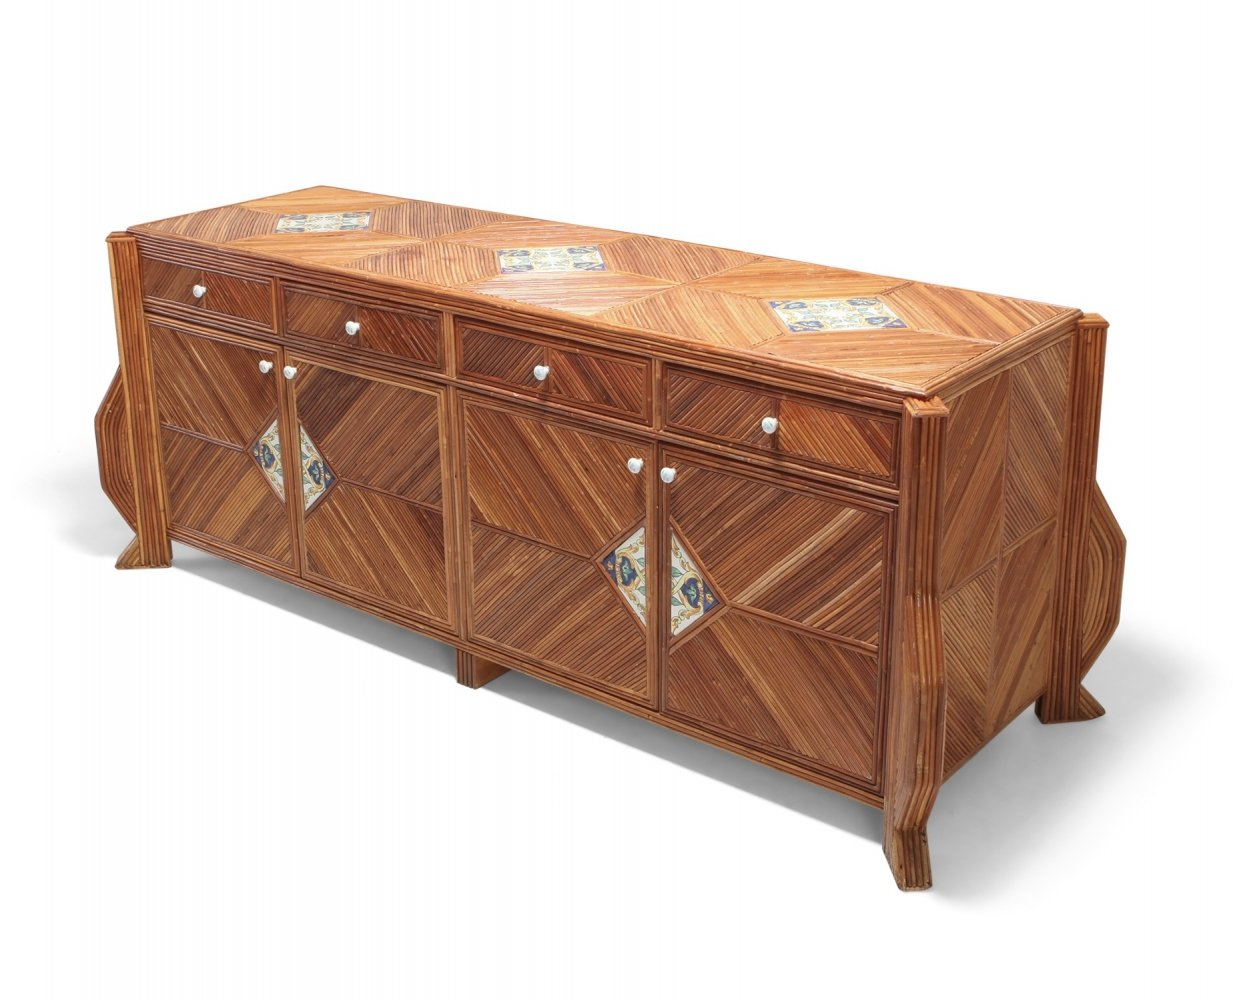 Double Face Credenza In Bamboo & Ceramic by Vivai Del Sud, 1970s